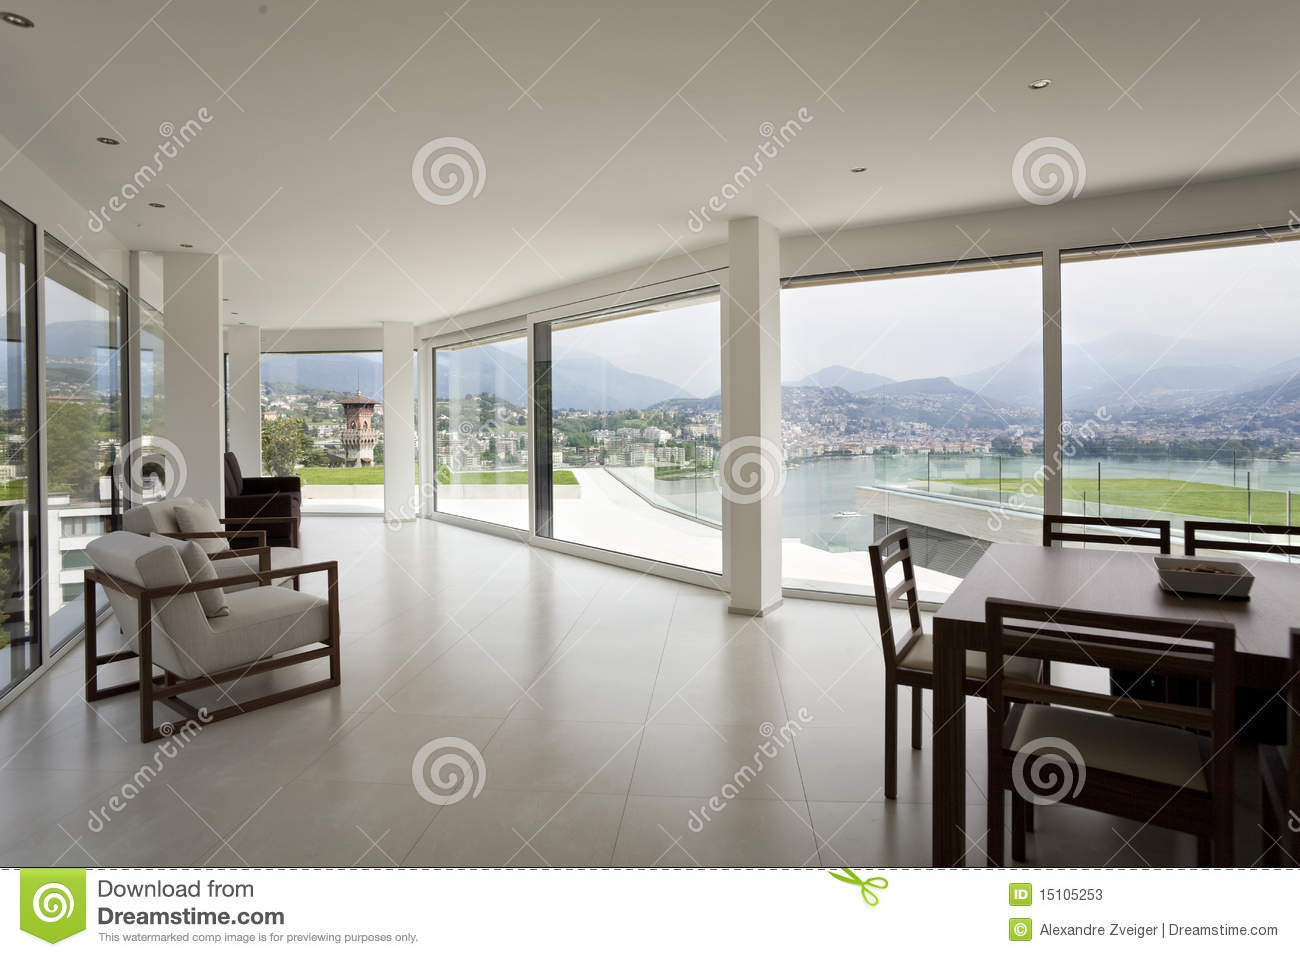 Bel int rieur d 39 une maison moderne photos stock image 15105253 for Interieur d une maison